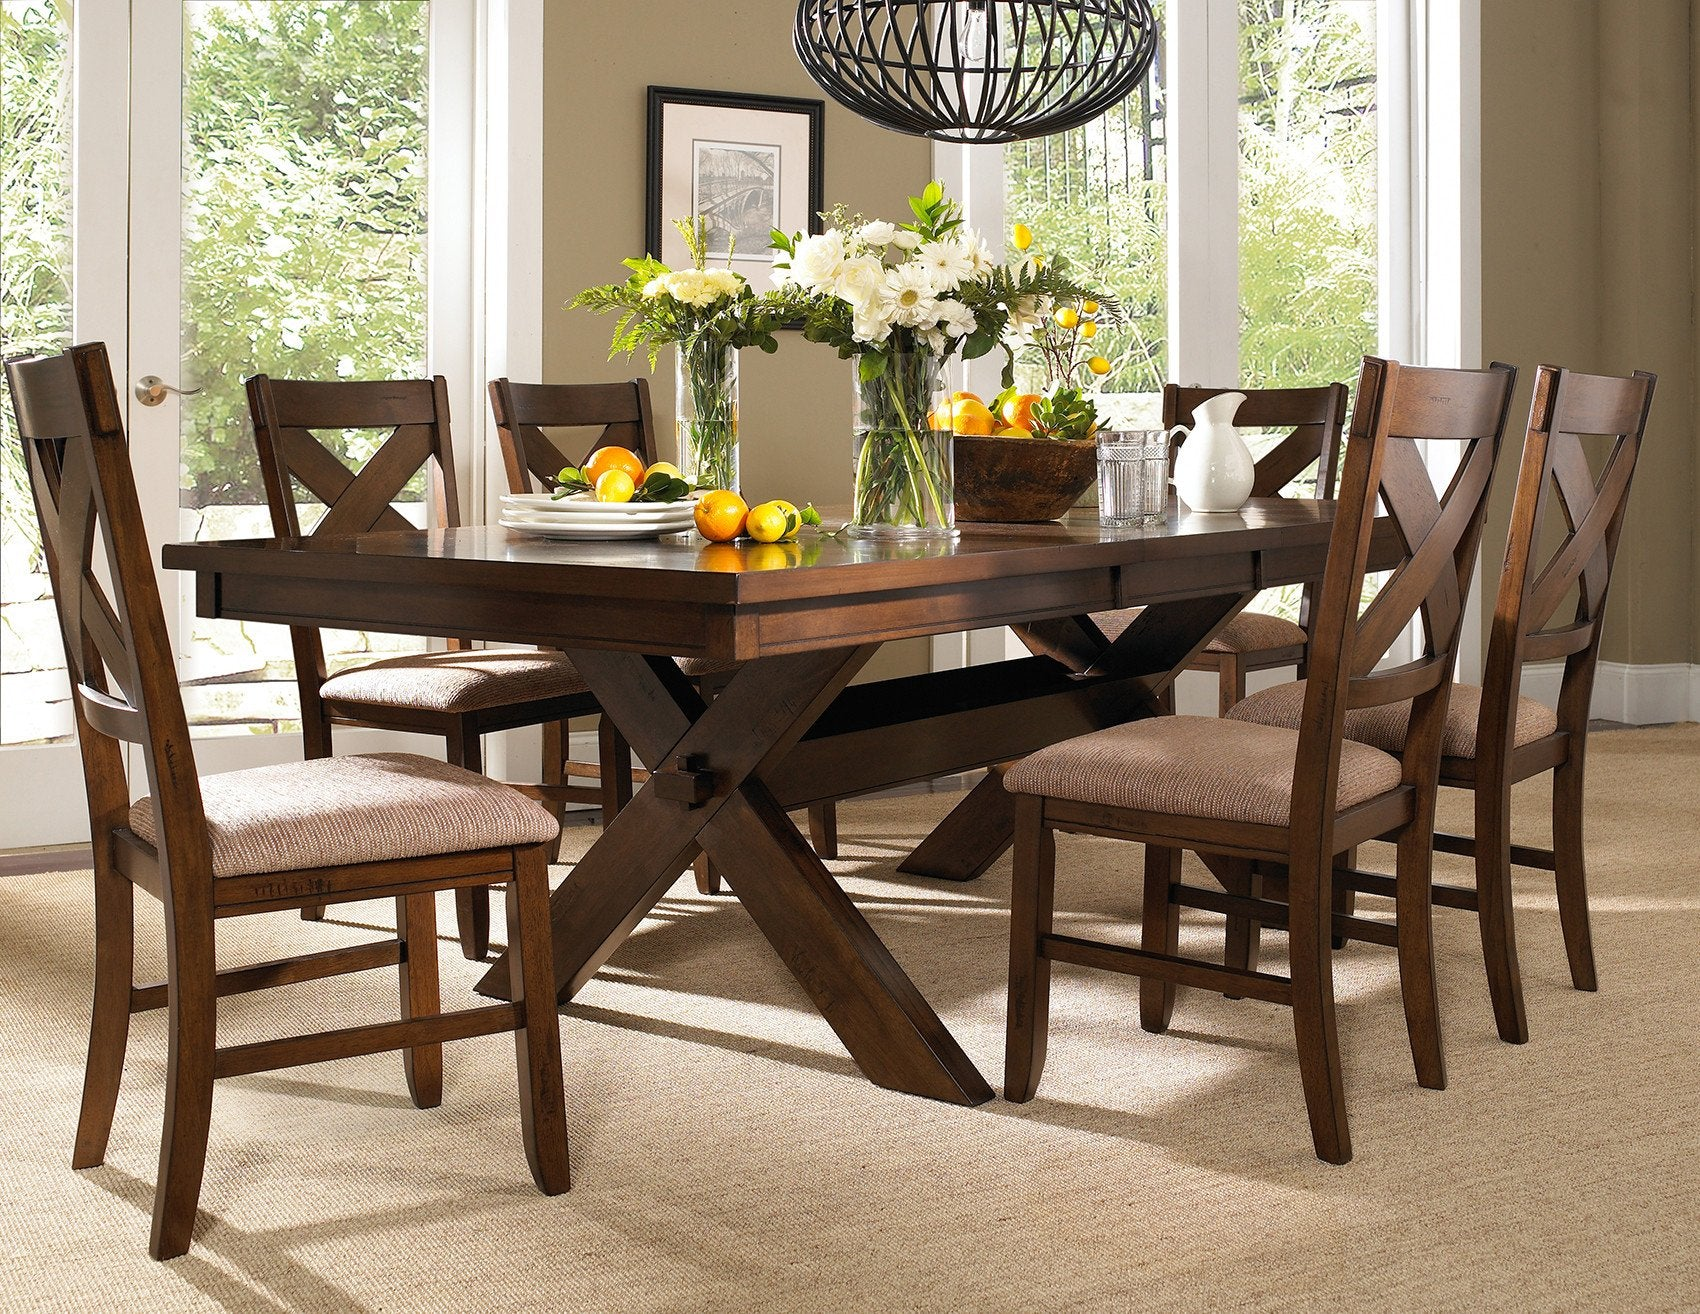 Picture of: 7 Piece Karven Solid Wood Dining Set With Table And 6 Chairs Roundhill Furniture